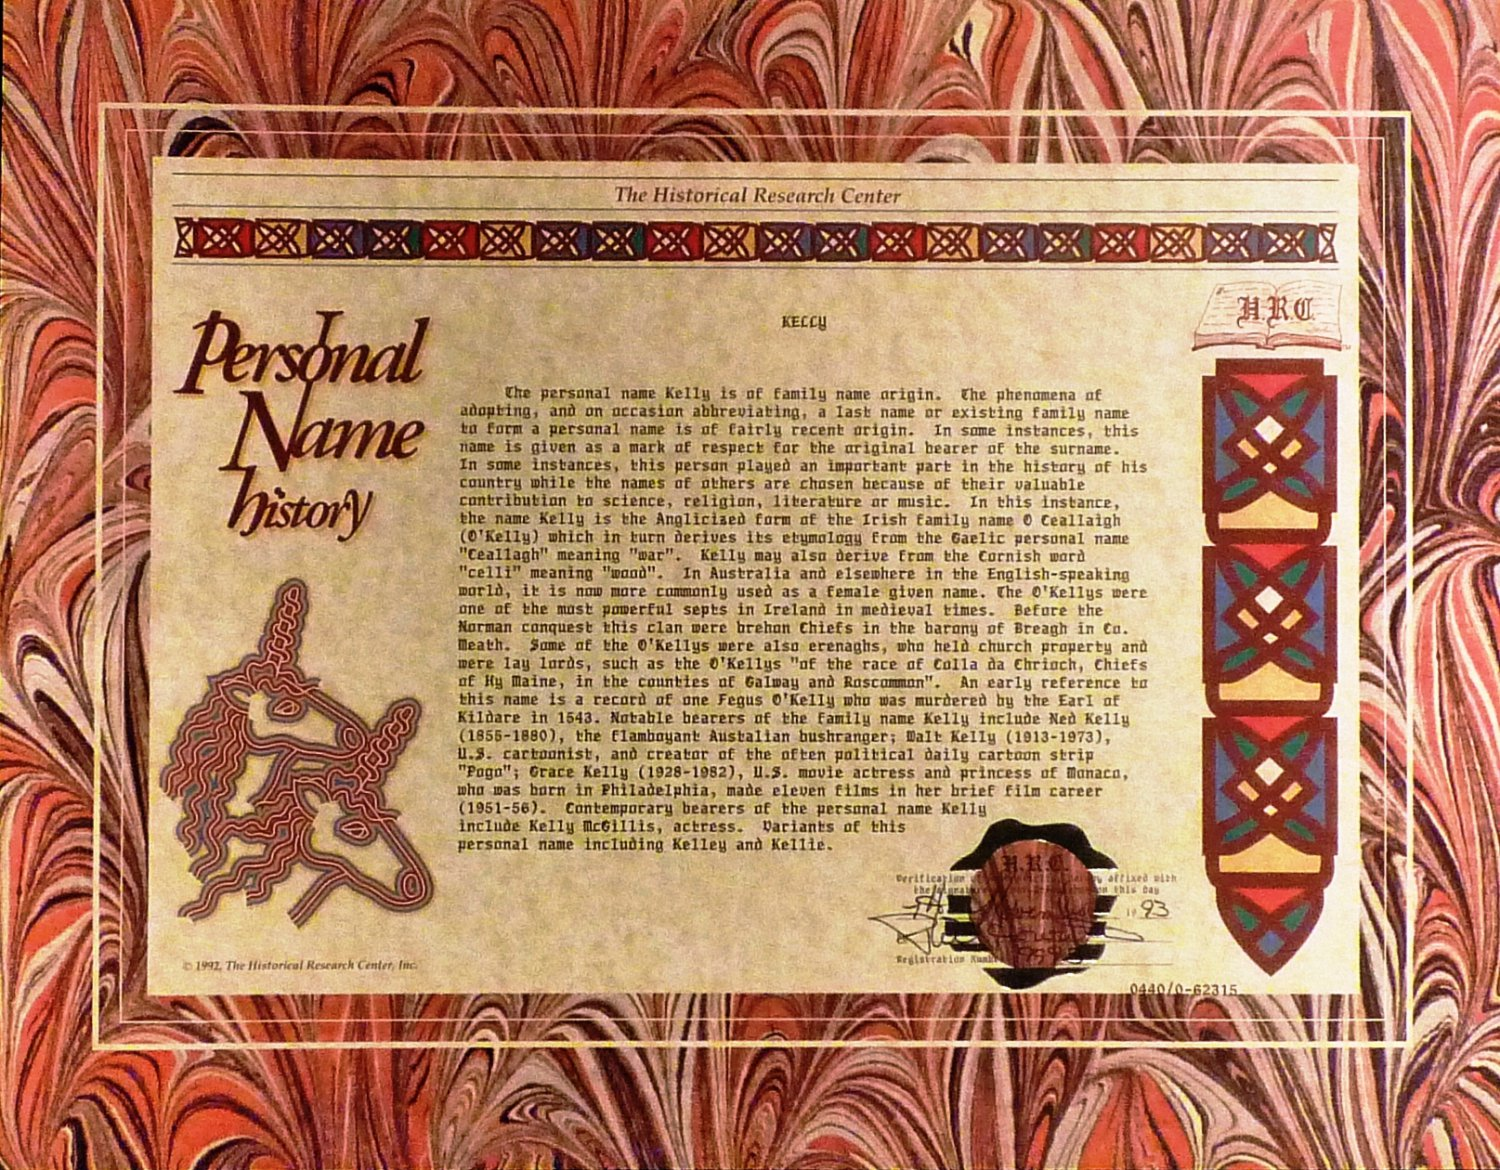 PAPER SCROLL CERTIFIED HISTORICAL RESEARCH PERSONAL NAME HISTORY 'KELLY'